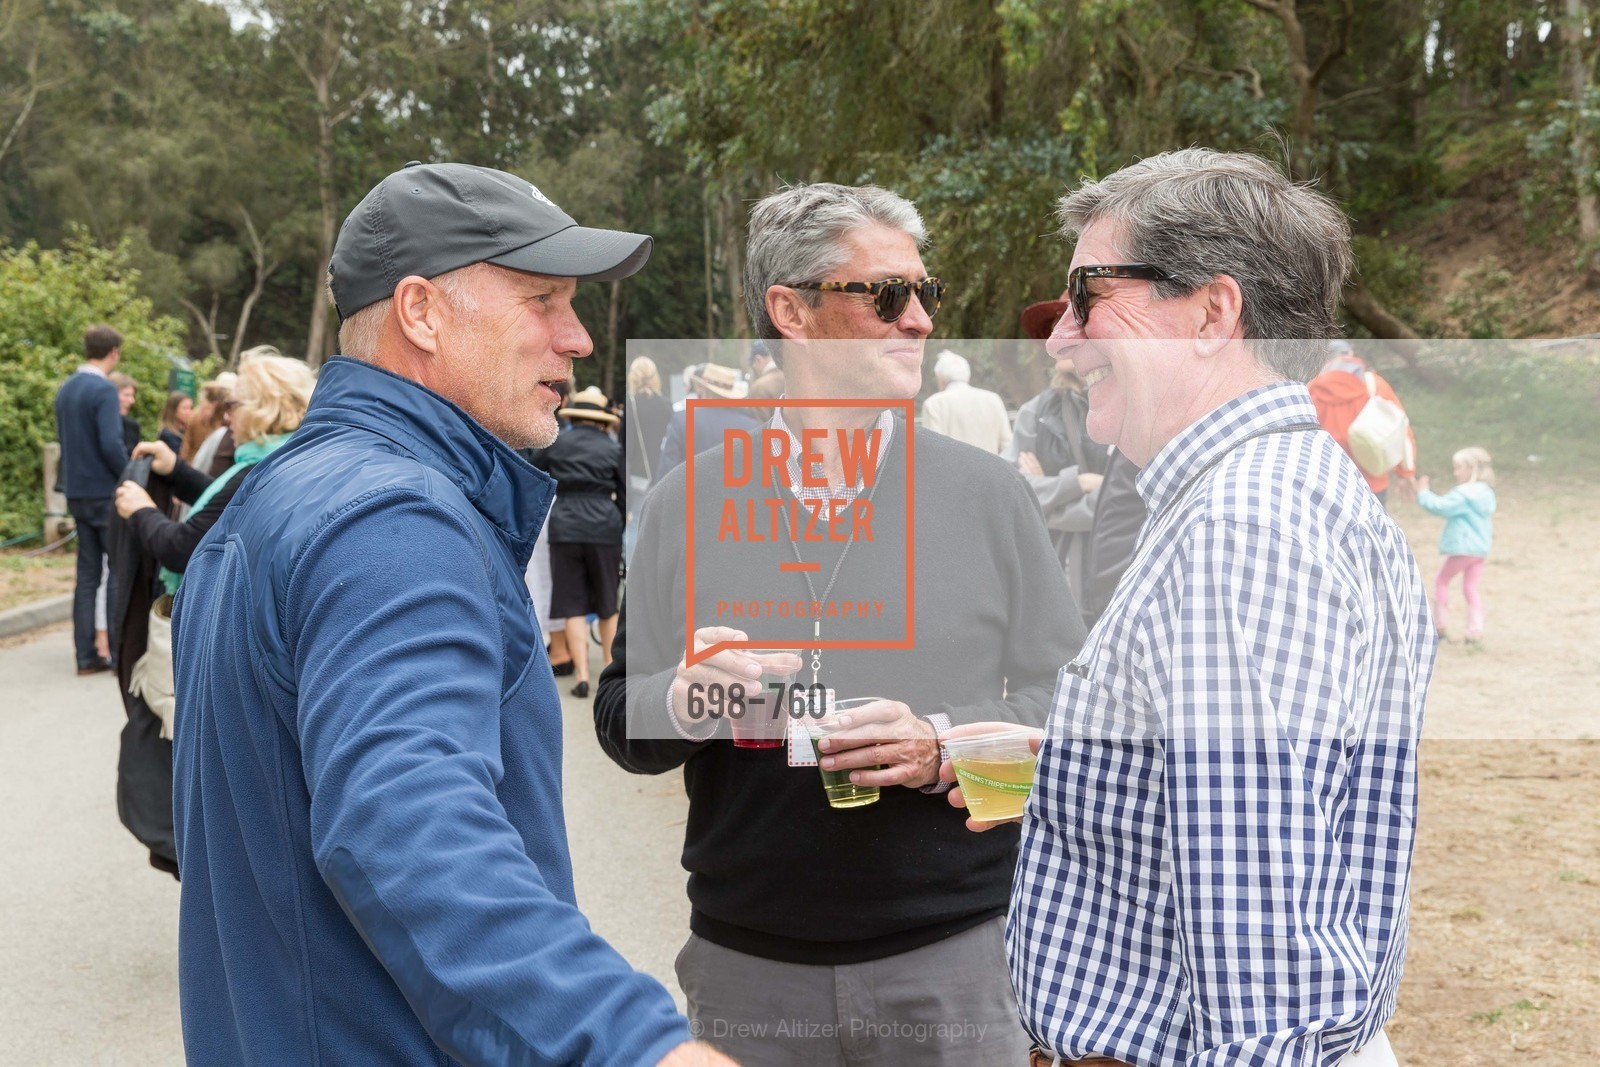 Richard Steiny, Tom Suiter, Tom Walsh, The Big Picnic! A Benefit & Concert for STERN GROVE FESTIVAL, US, June 14th, 2015,Drew Altizer, Drew Altizer Photography, full-service agency, private events, San Francisco photographer, photographer california